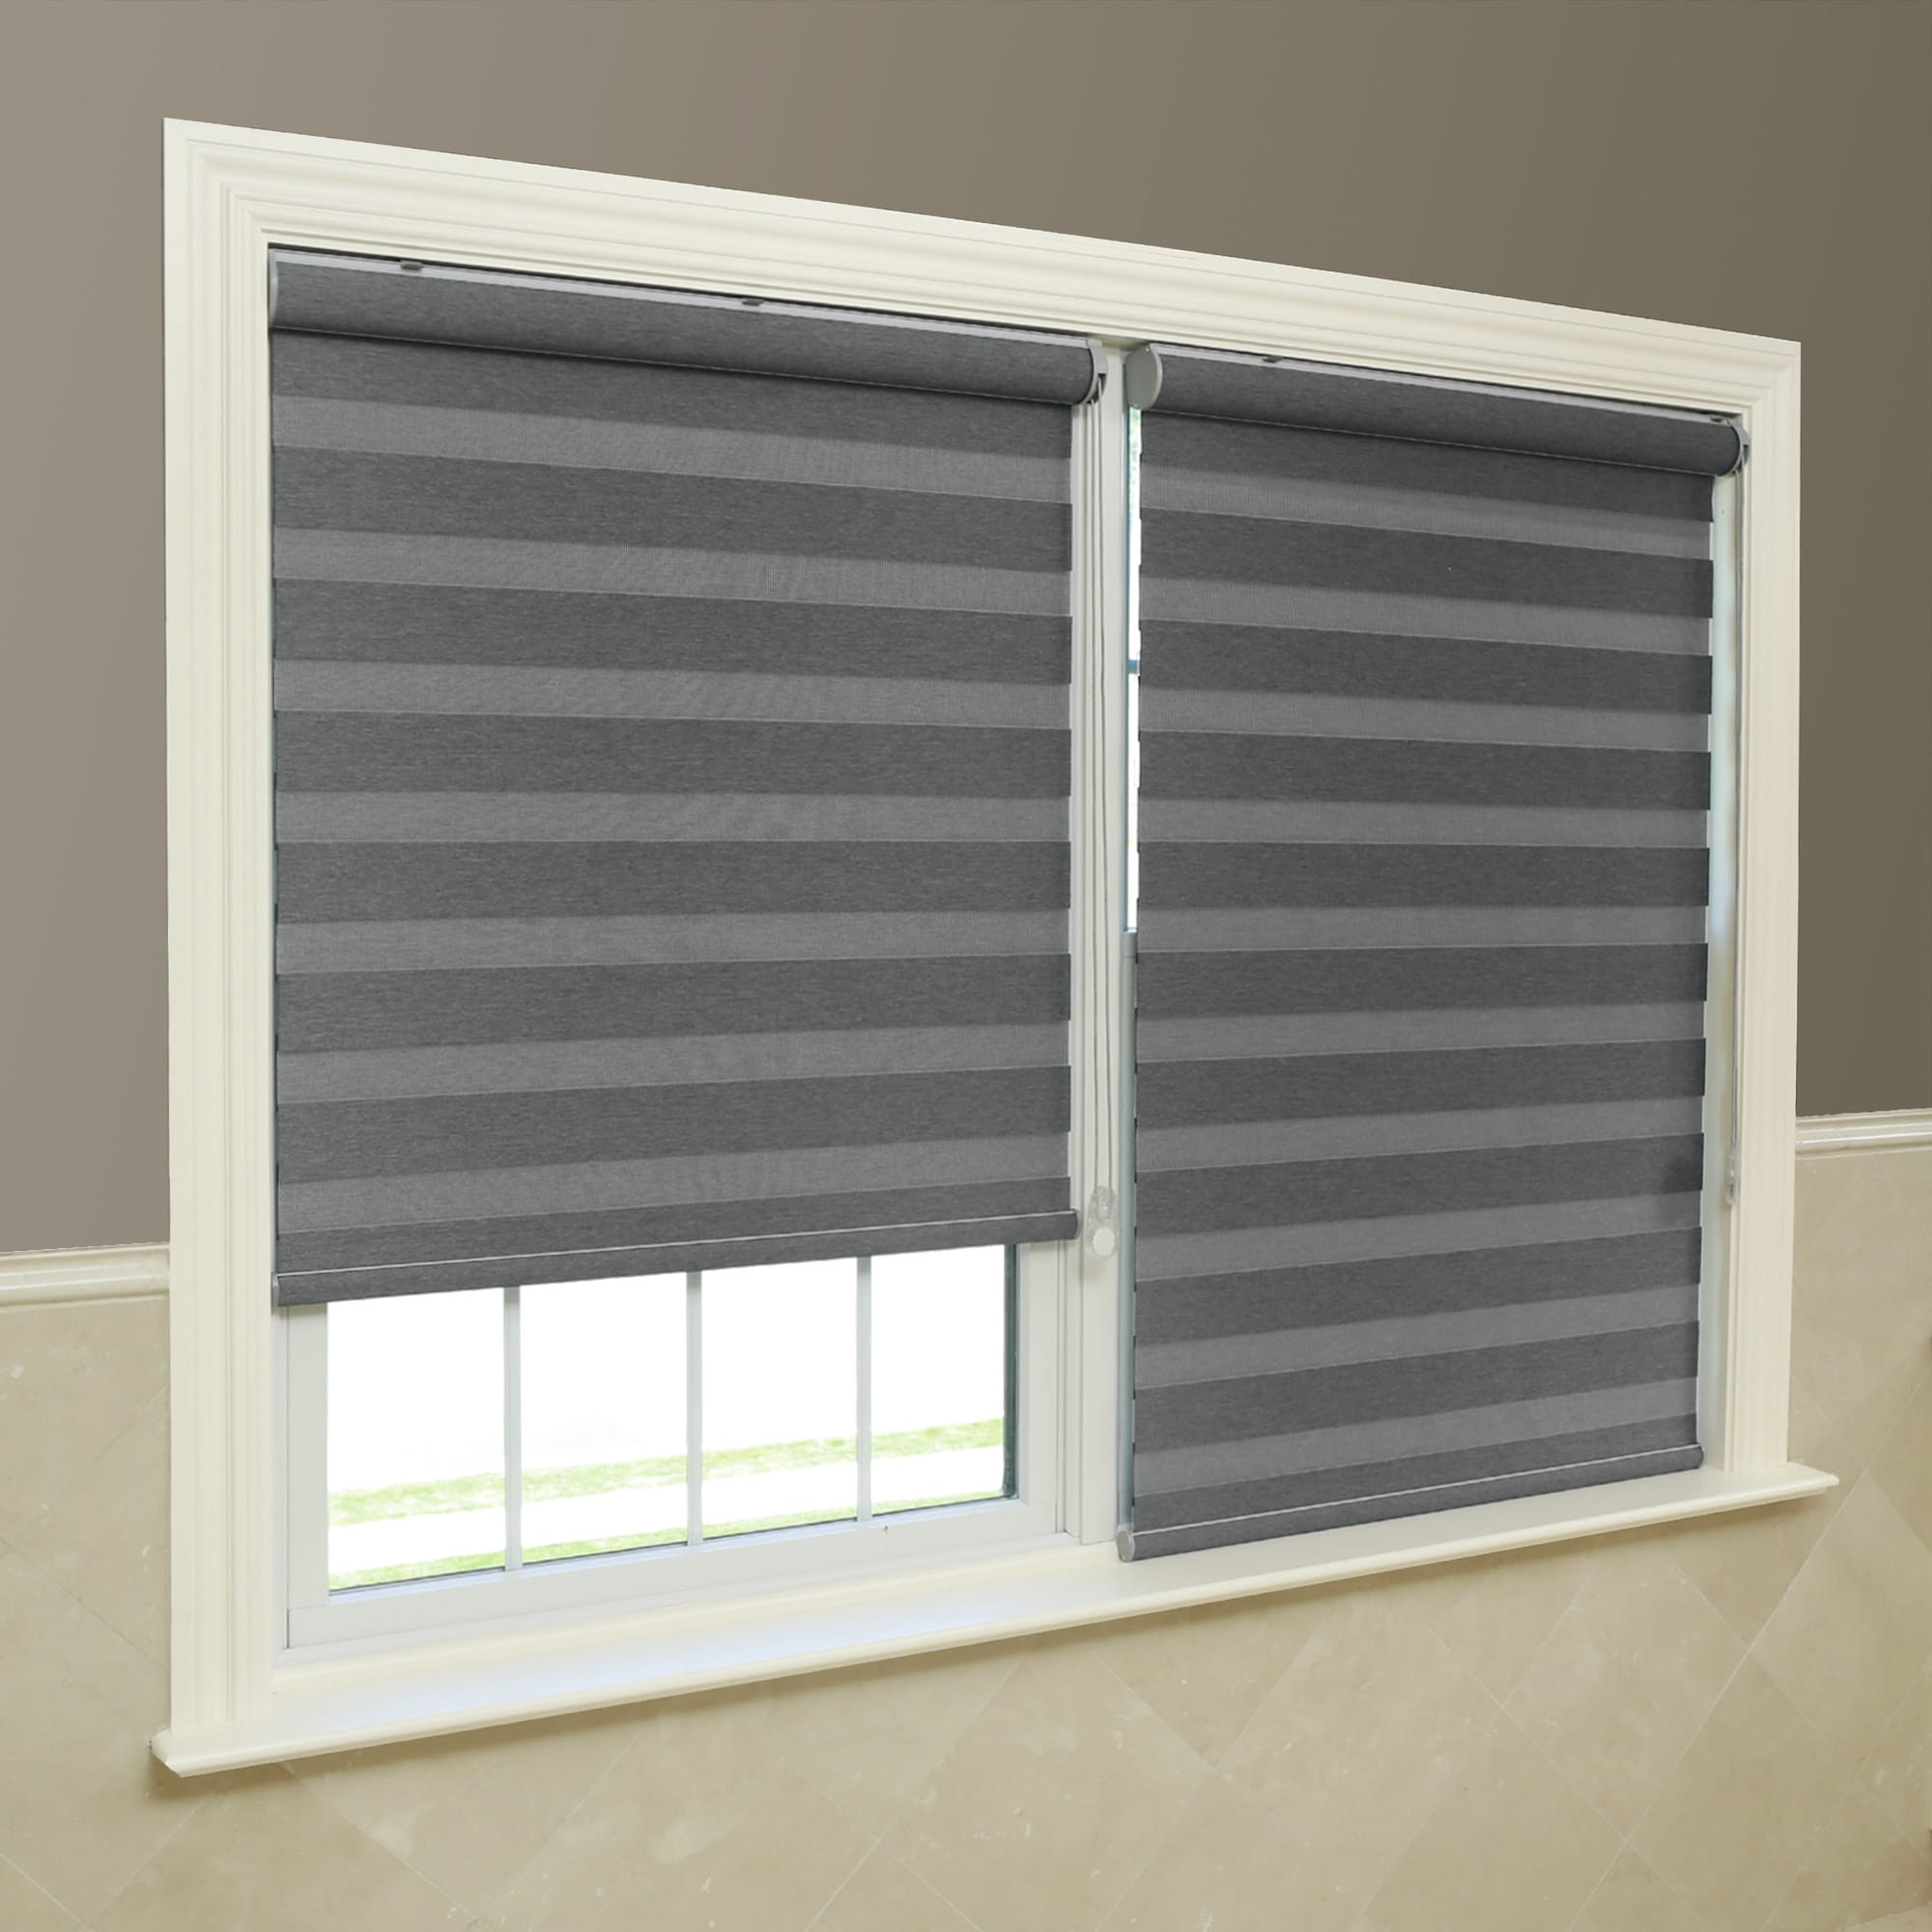 window aurora today product fabric home coconut blackout premium shade duo shipping garden free blinds overstock sunshut